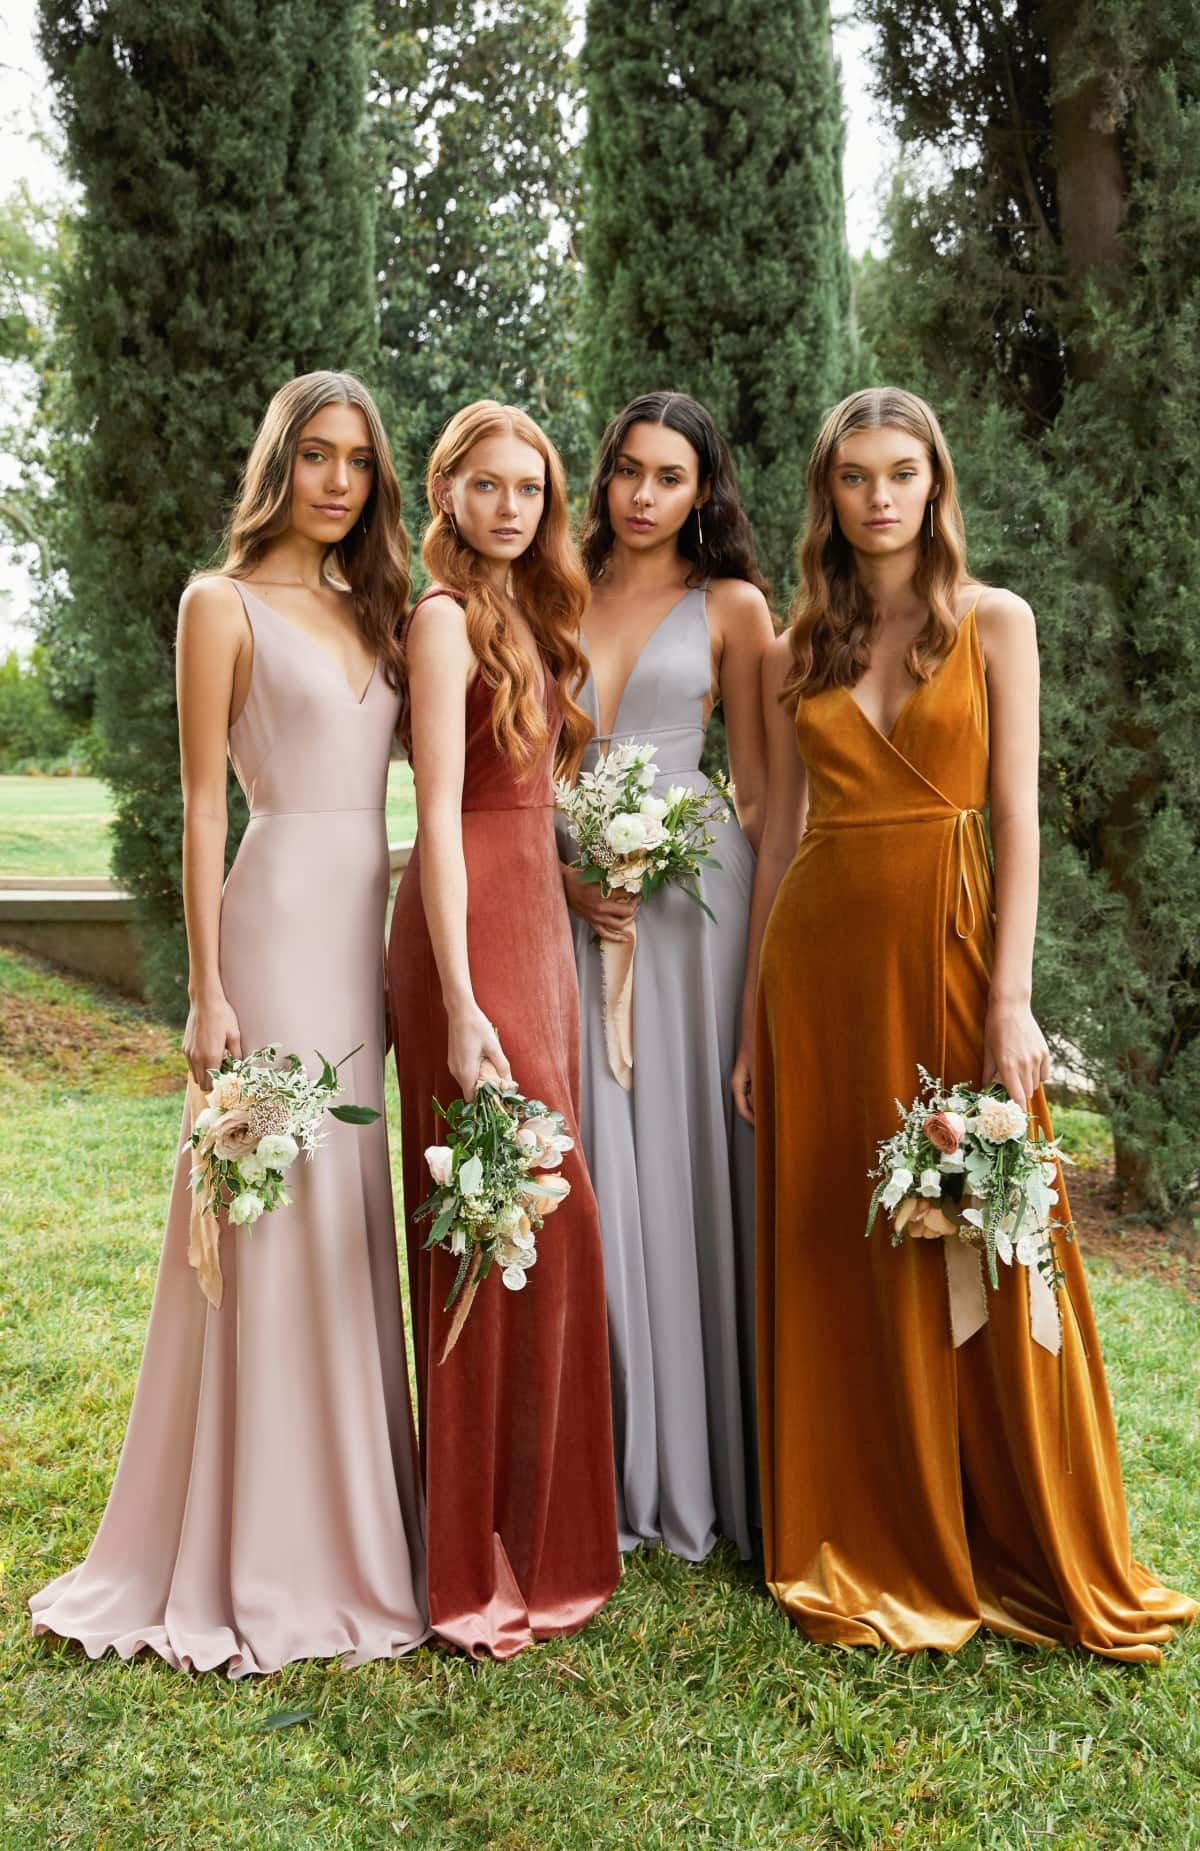 Jenny Yoo Collection Bridesmaid Dresses Spring 2020 Dress For The Wedding Spring Bridesmaid Dresses Mix Match Bridesmaids Dresses Bridesmaid [ 1851 x 1200 Pixel ]